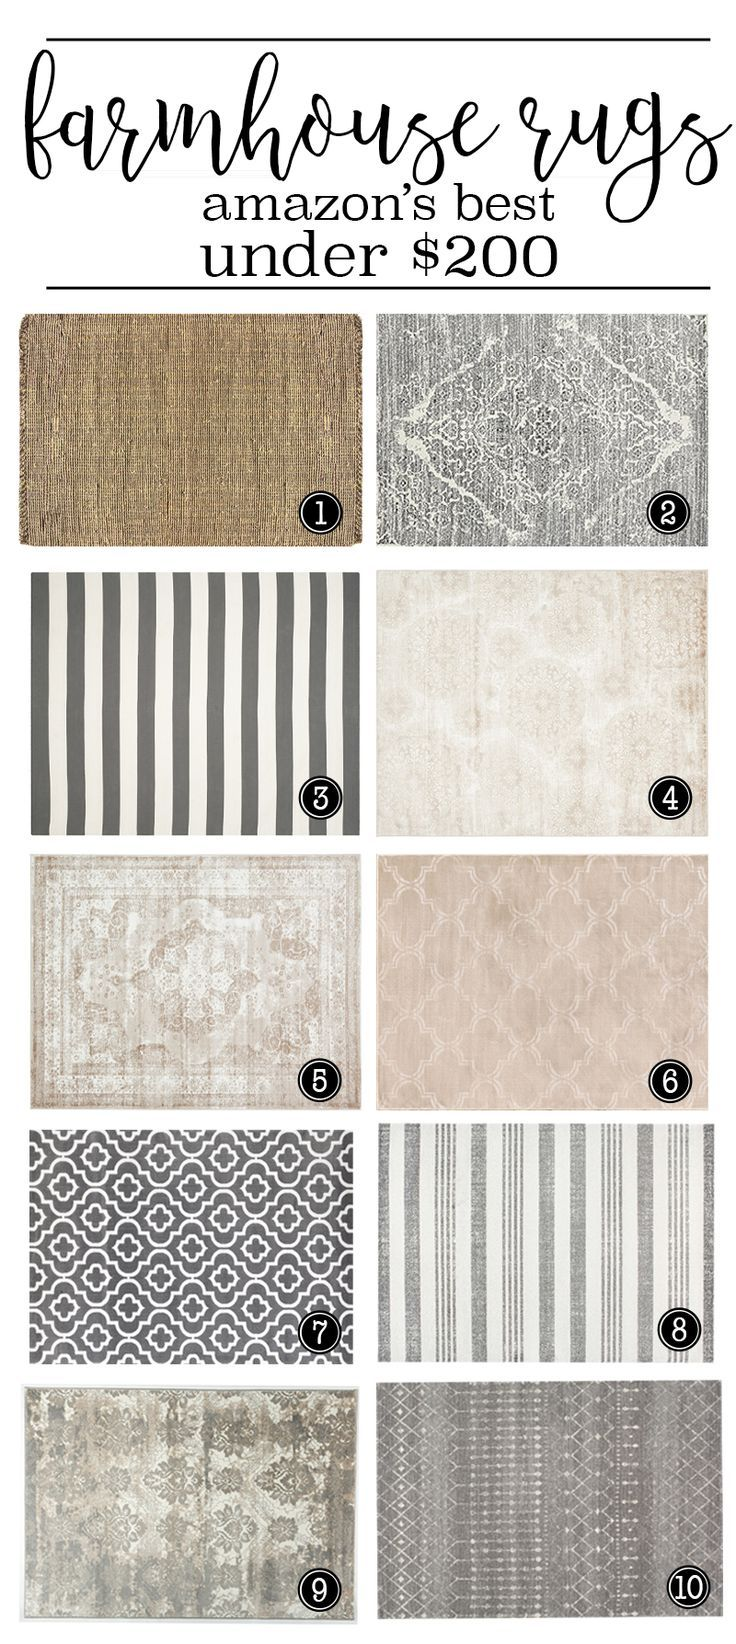 8x10 rugs - all under $200. Beautiful farmhouse style rugs... LOVE! #farmhousestyle #rugs